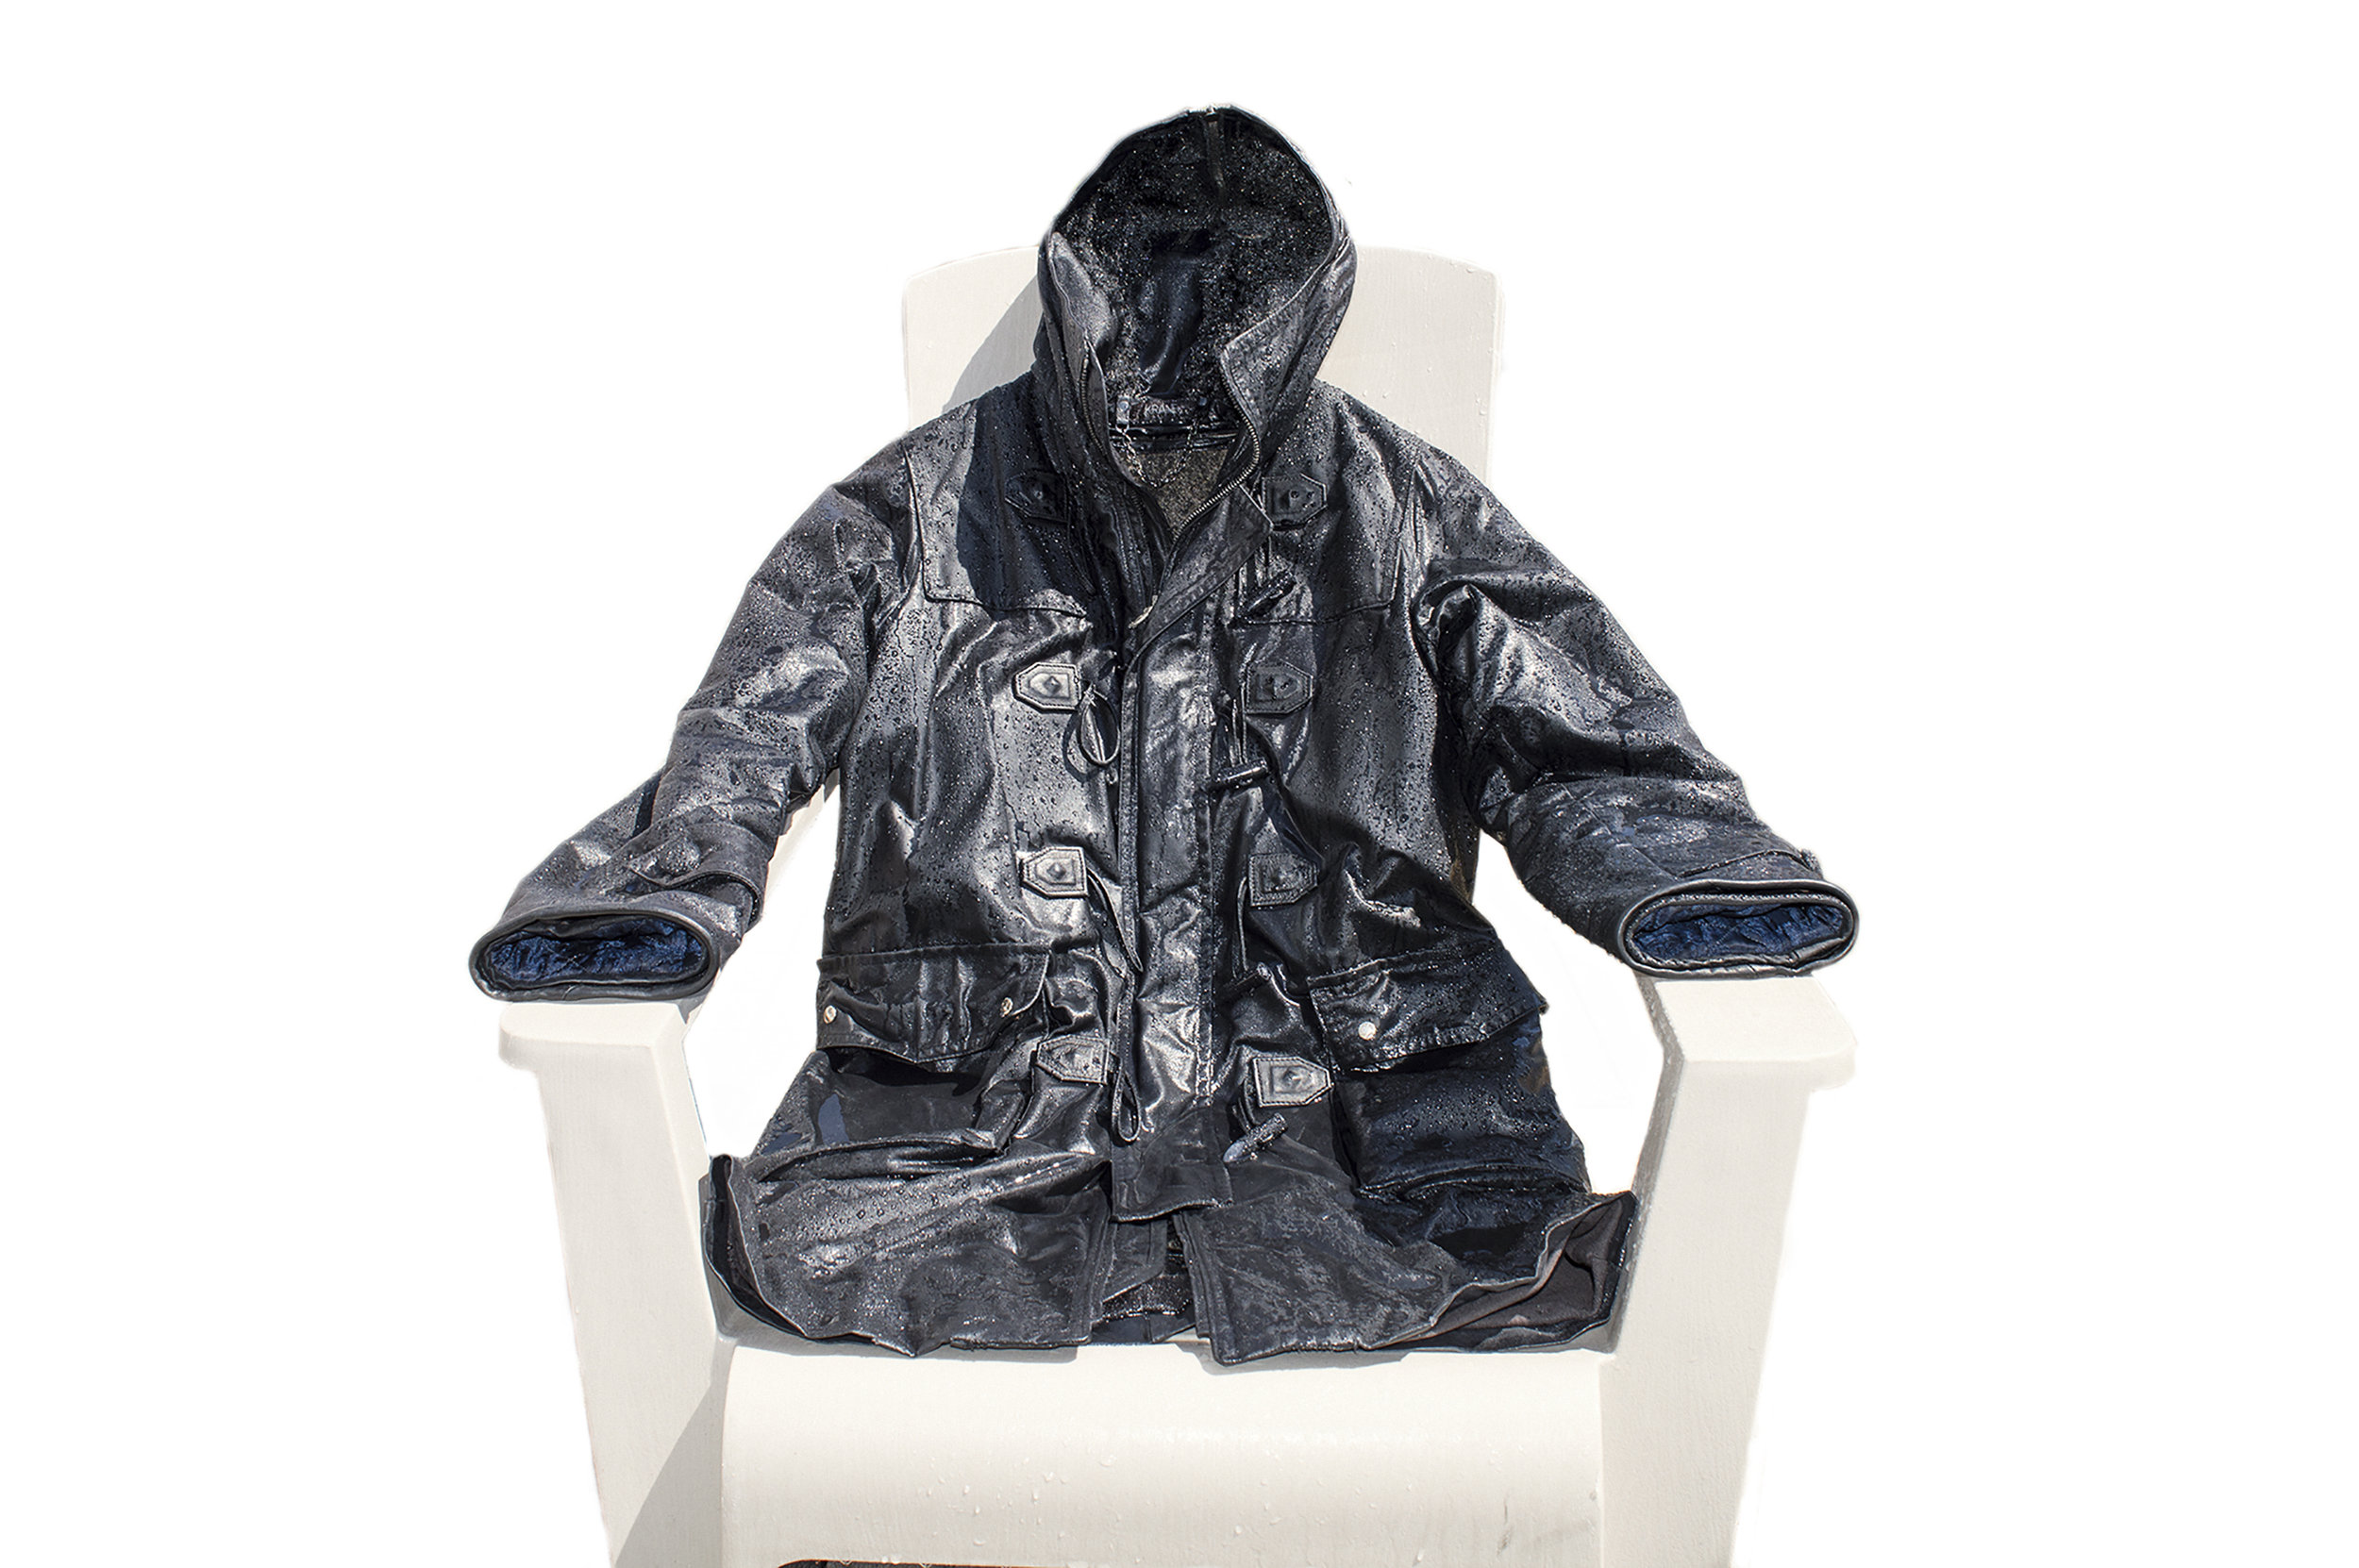 plastic or composite fibre chairs are a nice clean surface for the coat to dry in also. Be sure to flip the coat periodically based on the strength of the heat.